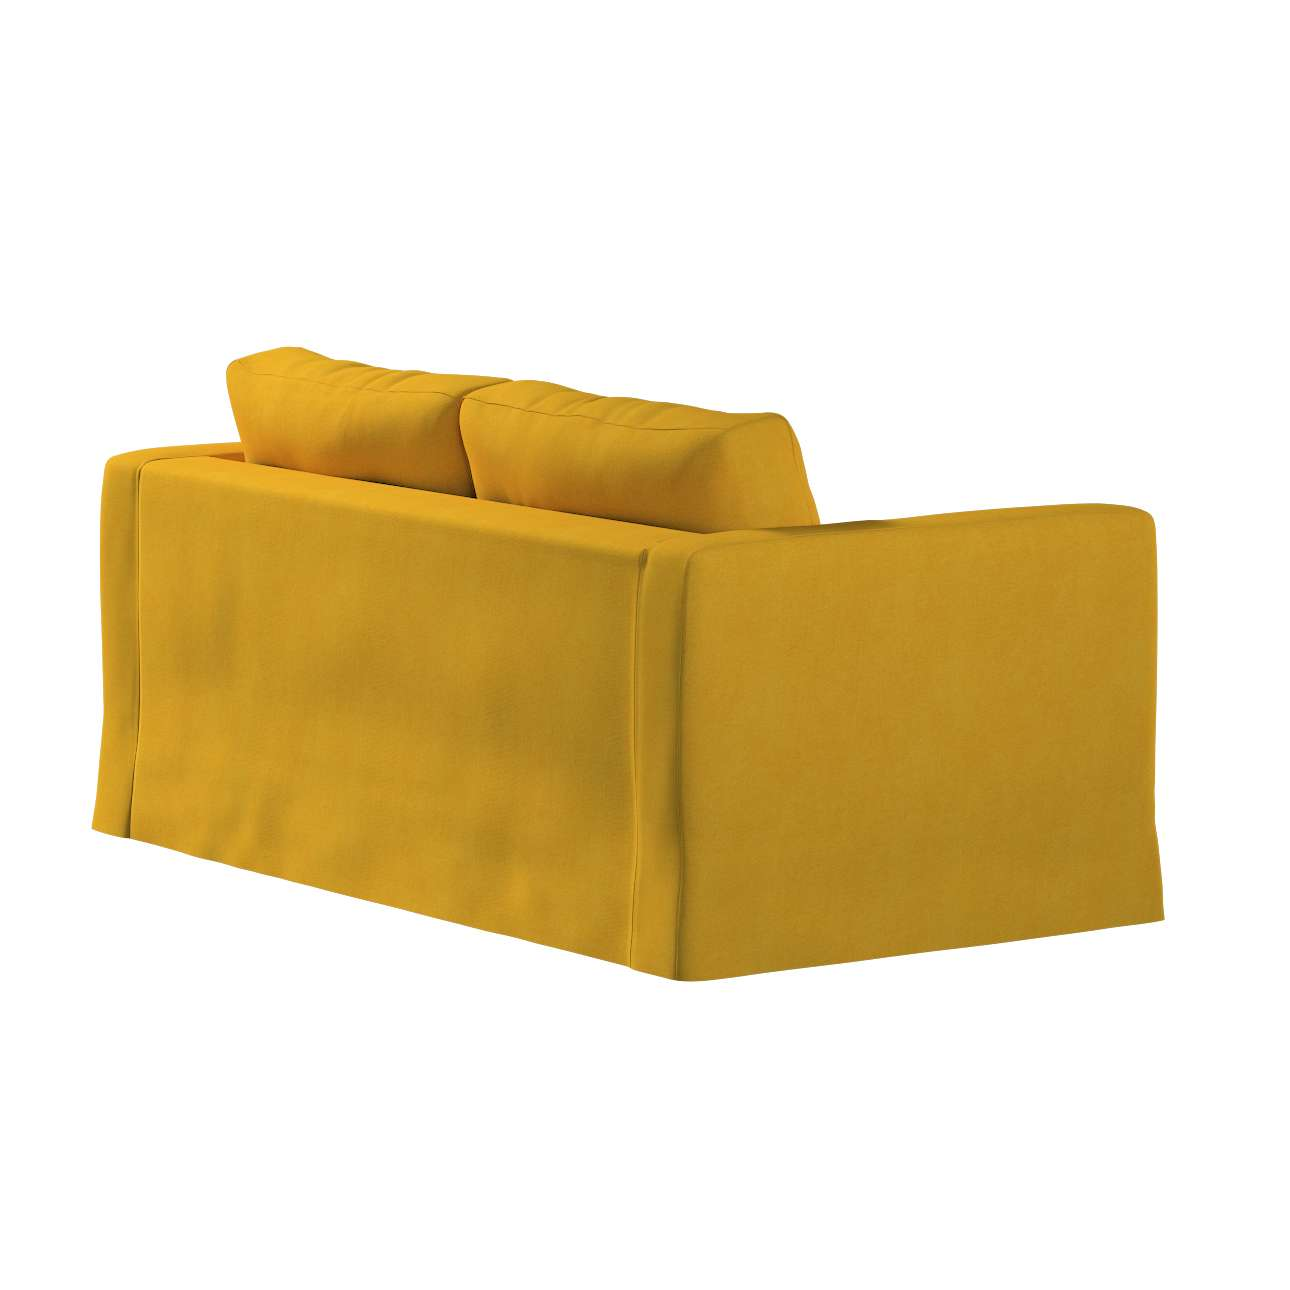 Floor length Karlstad 2-seater sofa cover in collection Etna, fabric: 705-04